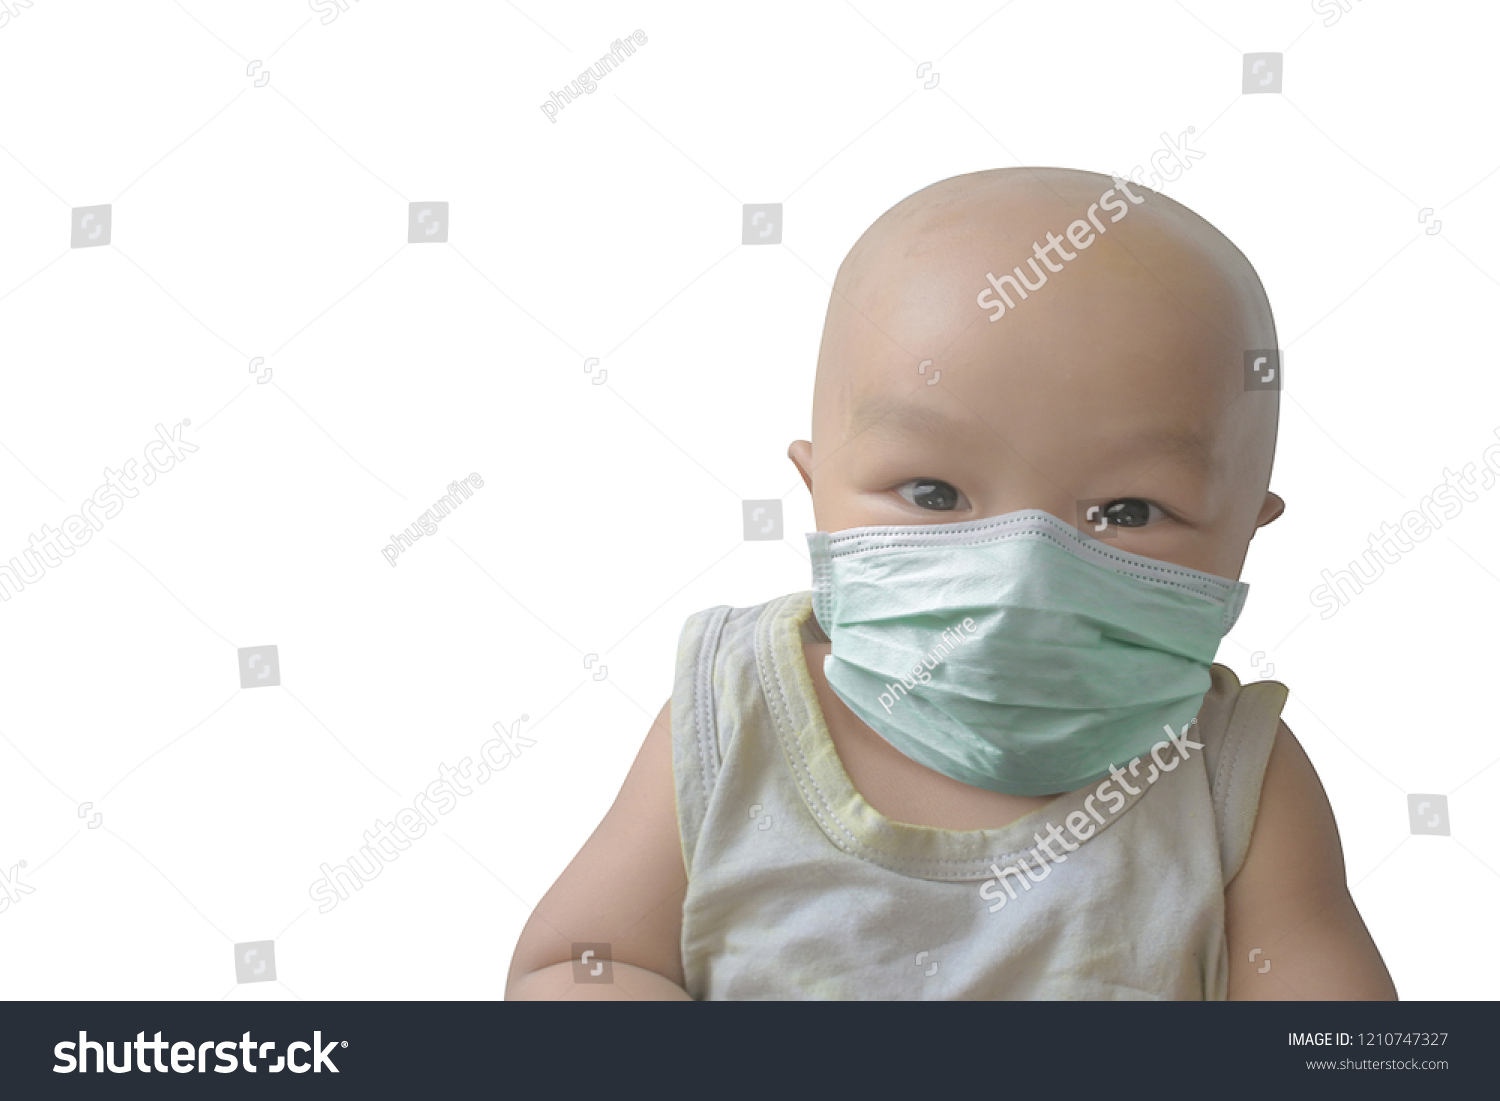 Healthcare Stock Without Hair Wearing medical Mask Baby Image